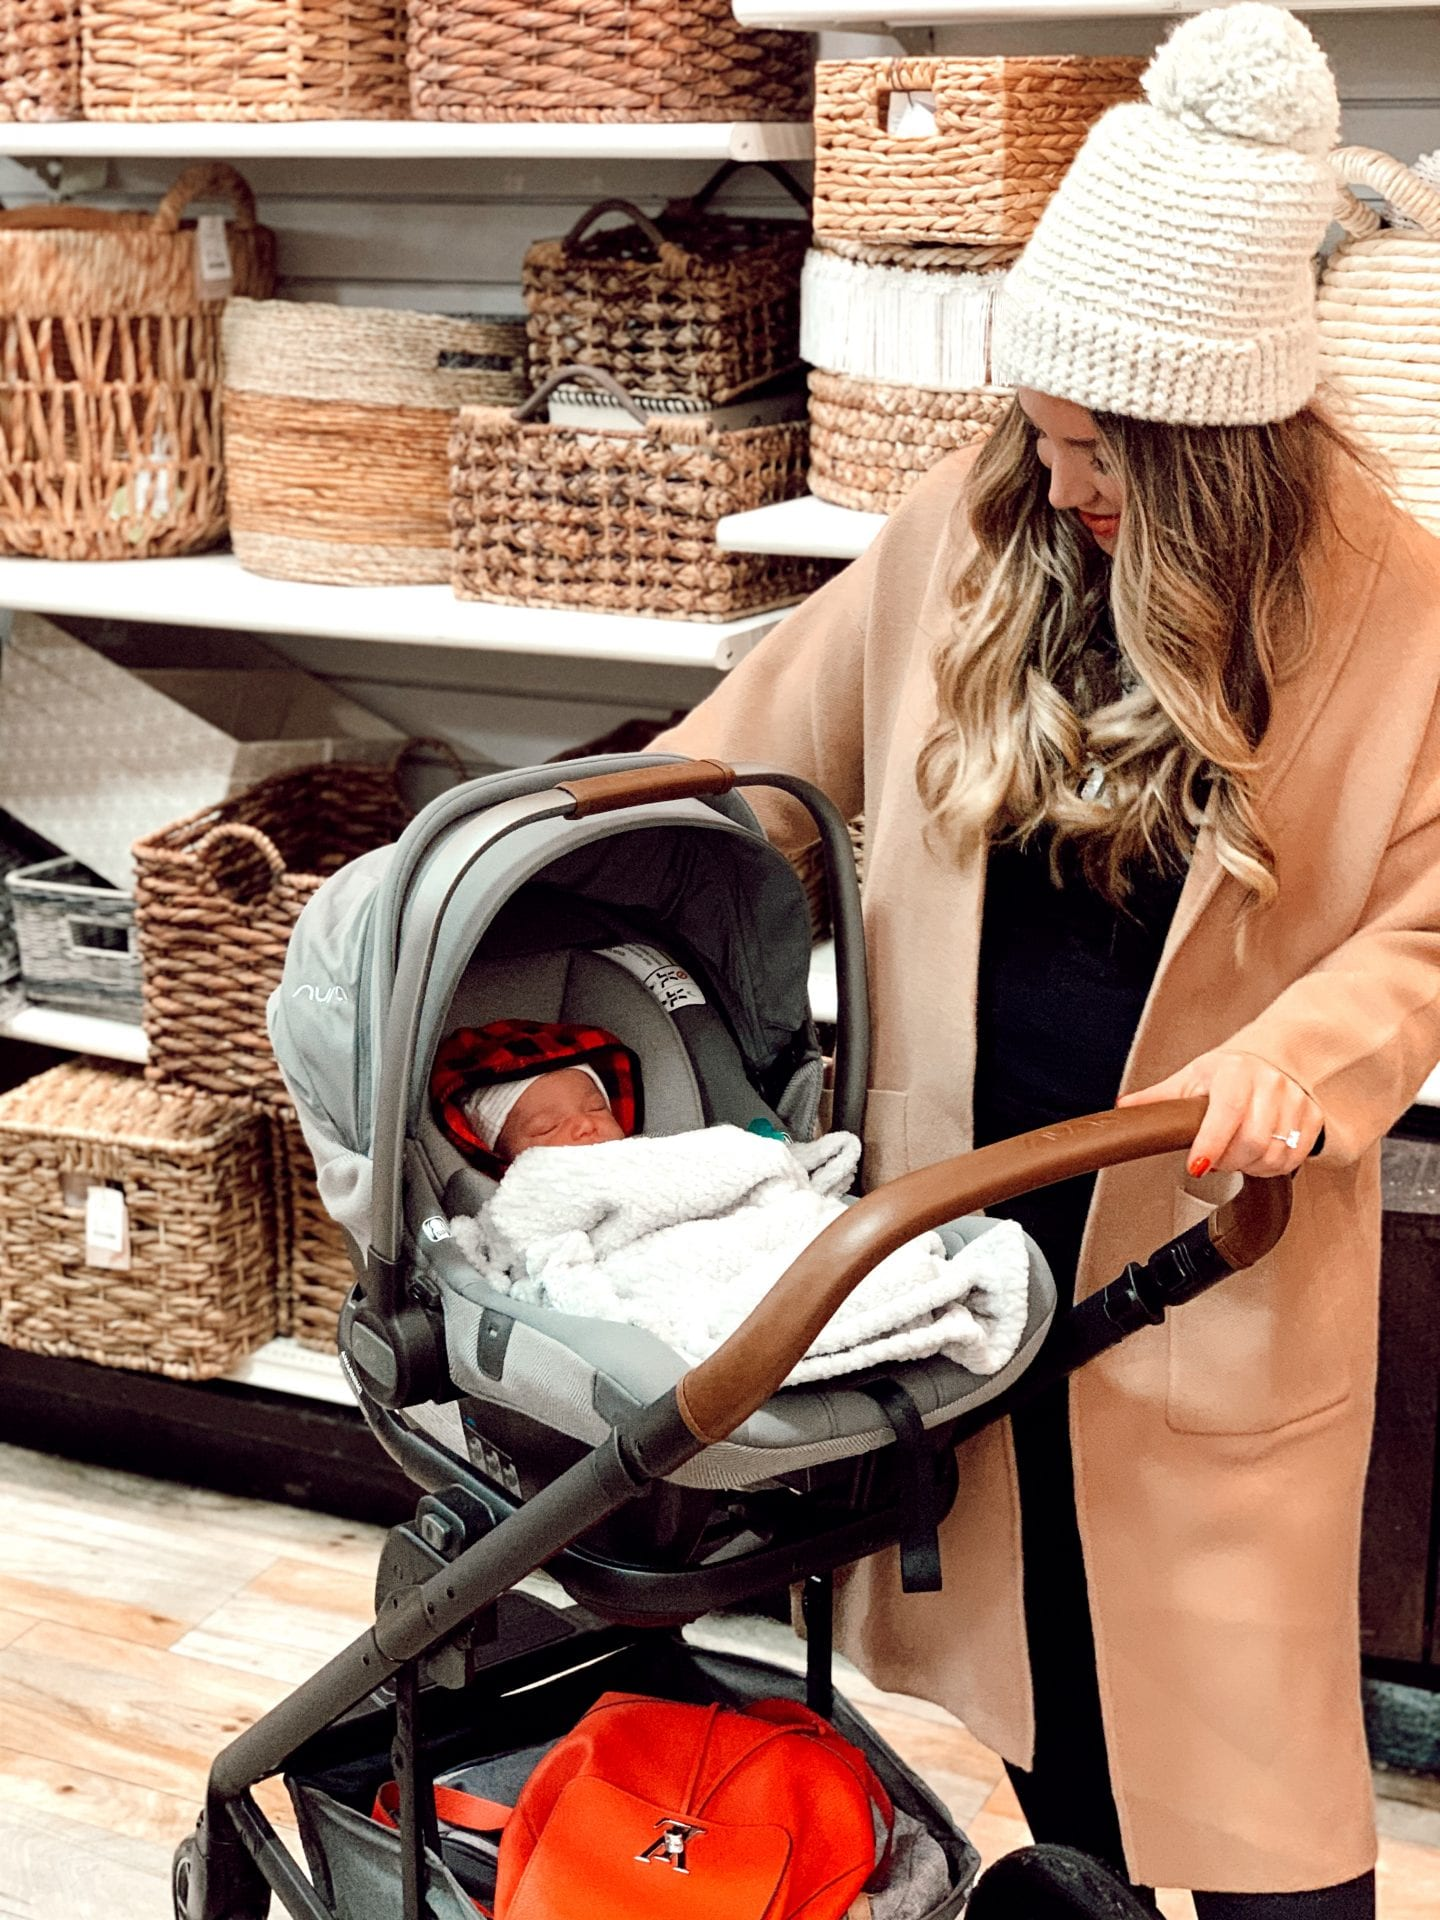 camel coat 2020 | 12 BEST CAMEL COATS FOR 2020 by popular California fashion blog, Just Add Glam: image of a woman pushing her baby in a stroller and wearing a camel coat.